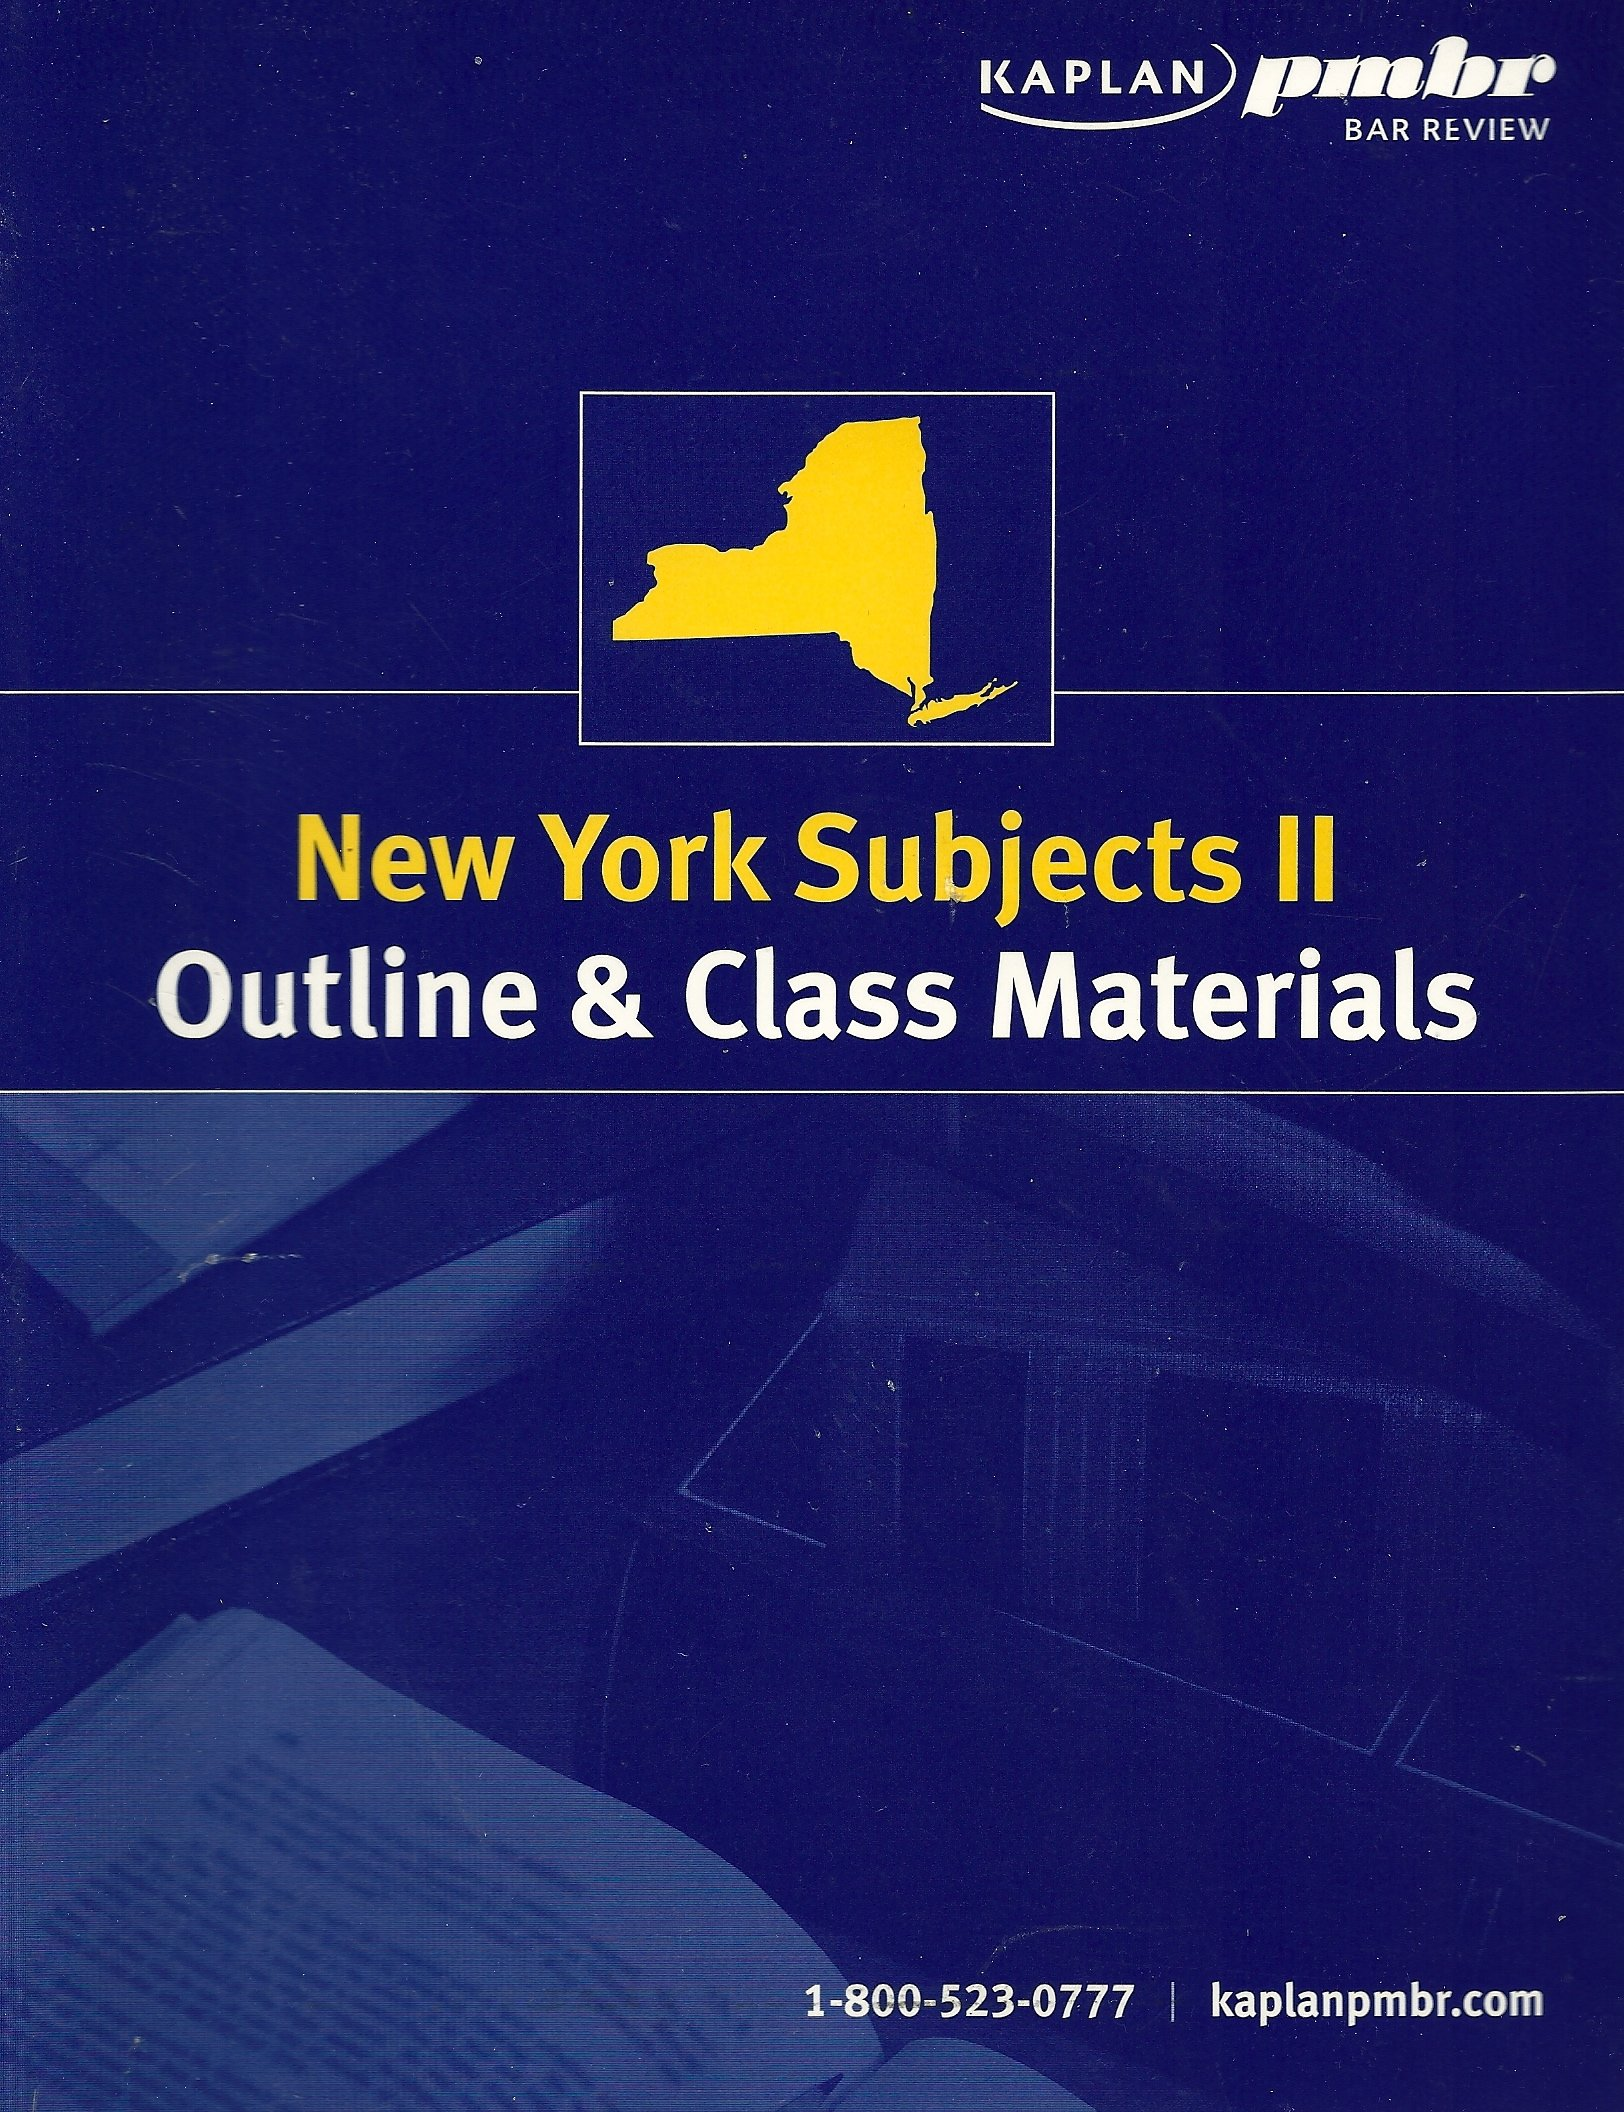 New York Subjects II: Outline & Class Materials (General Bar Review) PDF